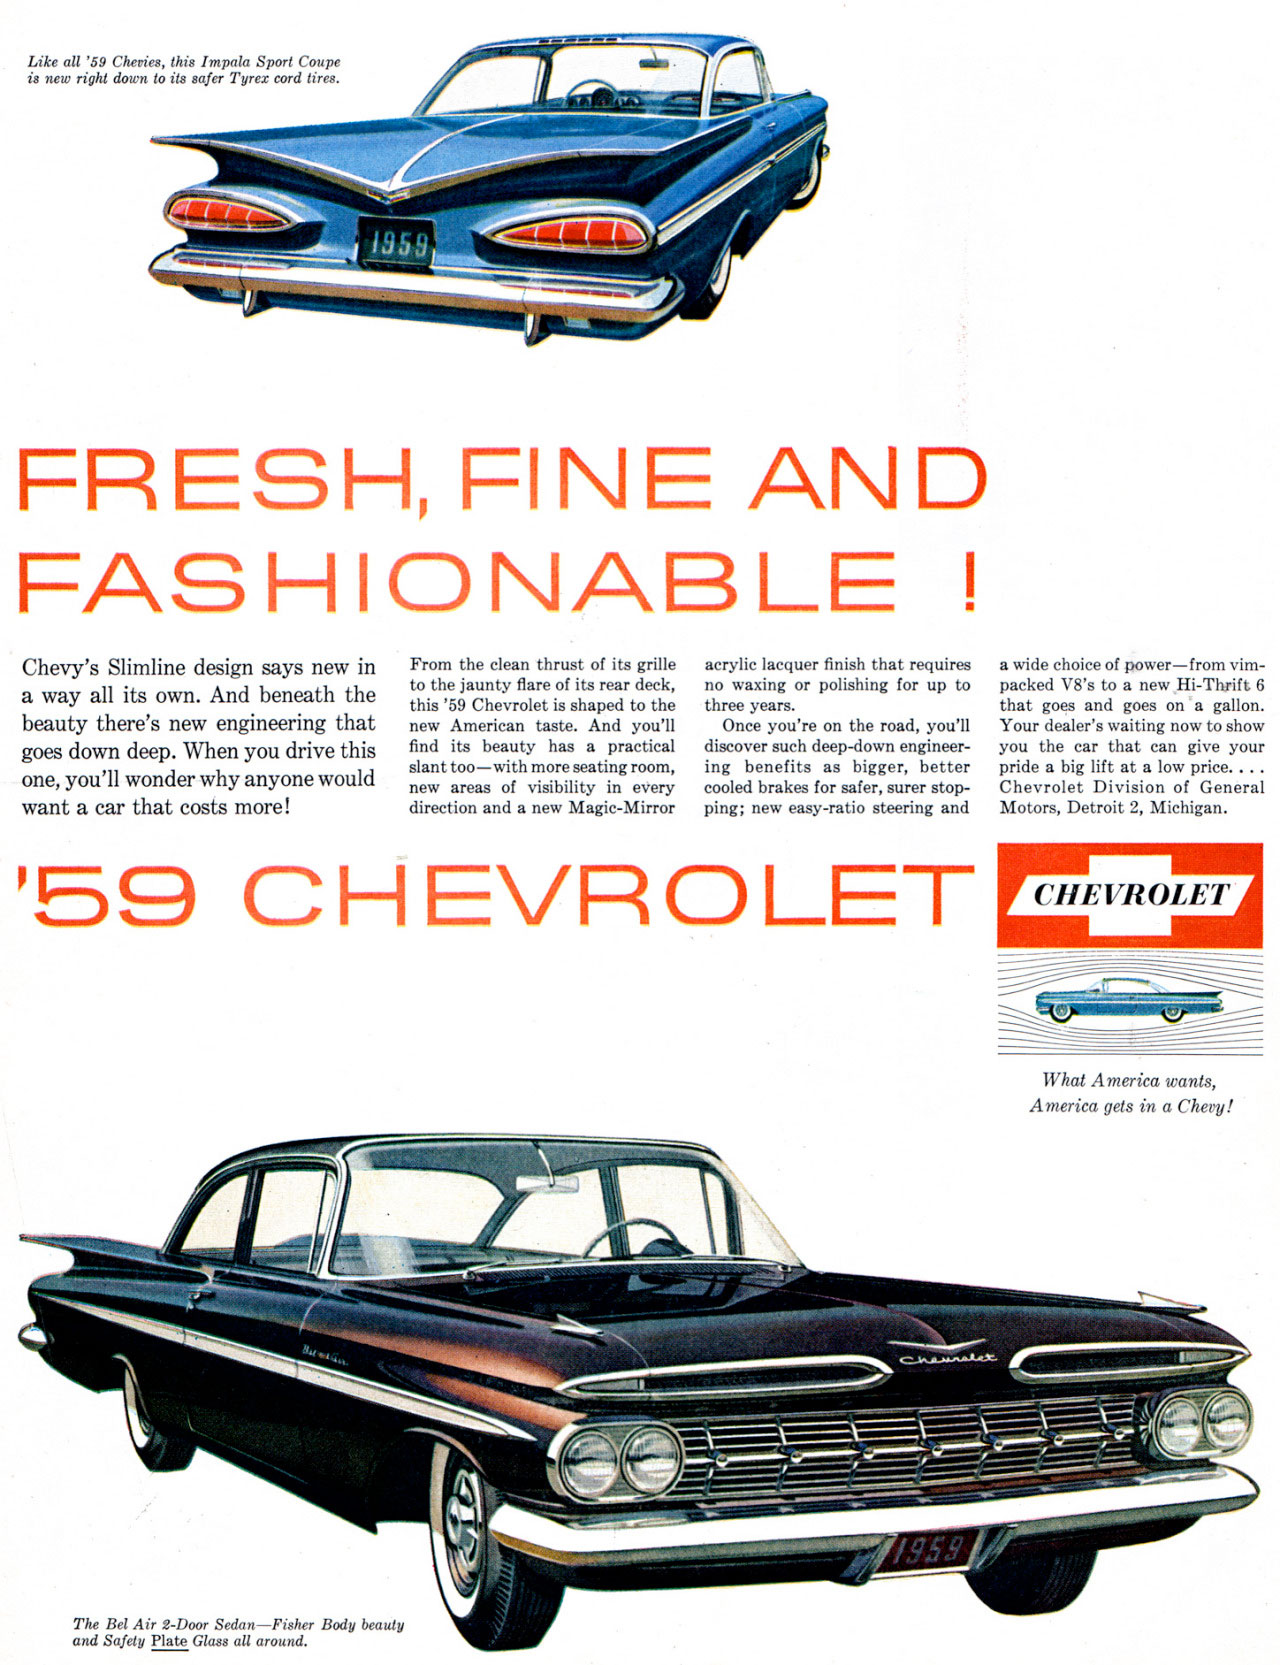 CHEVROLET  Like all '59 is new rightcdohewv,i,e7.J, this Impala Sport Coupe   FRESH, FINE AND FASHIONABLE  Chevy's Slimline design says new in a way all its own. And beneath the beauty there's new engineering that goes down deep. When you drive this one, you'll wonder why anyone would want a car that costs more!  From the clean thrust of its grille to the jaunty flare of its rear deck, this '59 Chevrolet is shaped to the new American taste. And you'll find its beauty has a practical slant too—with more seating room, new areas of visibility in every direction and a new Magic-Mirror  acrylic lacquer finish that requires no waxing or polishing for up to three years. Once you're on the road, you'll discover such deep-down engineer-ing benefits as bigger, better cooled brakes for safer, surer stop-ping; new easy-ratio steering and  '59 CHEVROLET  a wide choice of power—from vim-packed V8's to a new Hi-Thrift 6 that goes and goes on a gallon. Your dealer's waiting now to show you the car that can give your pride a big lift at a low price.... Chevrolet Division of General Motors, Detroit 2, Michigan.  -•   What America wants, America gets in a Chevy!